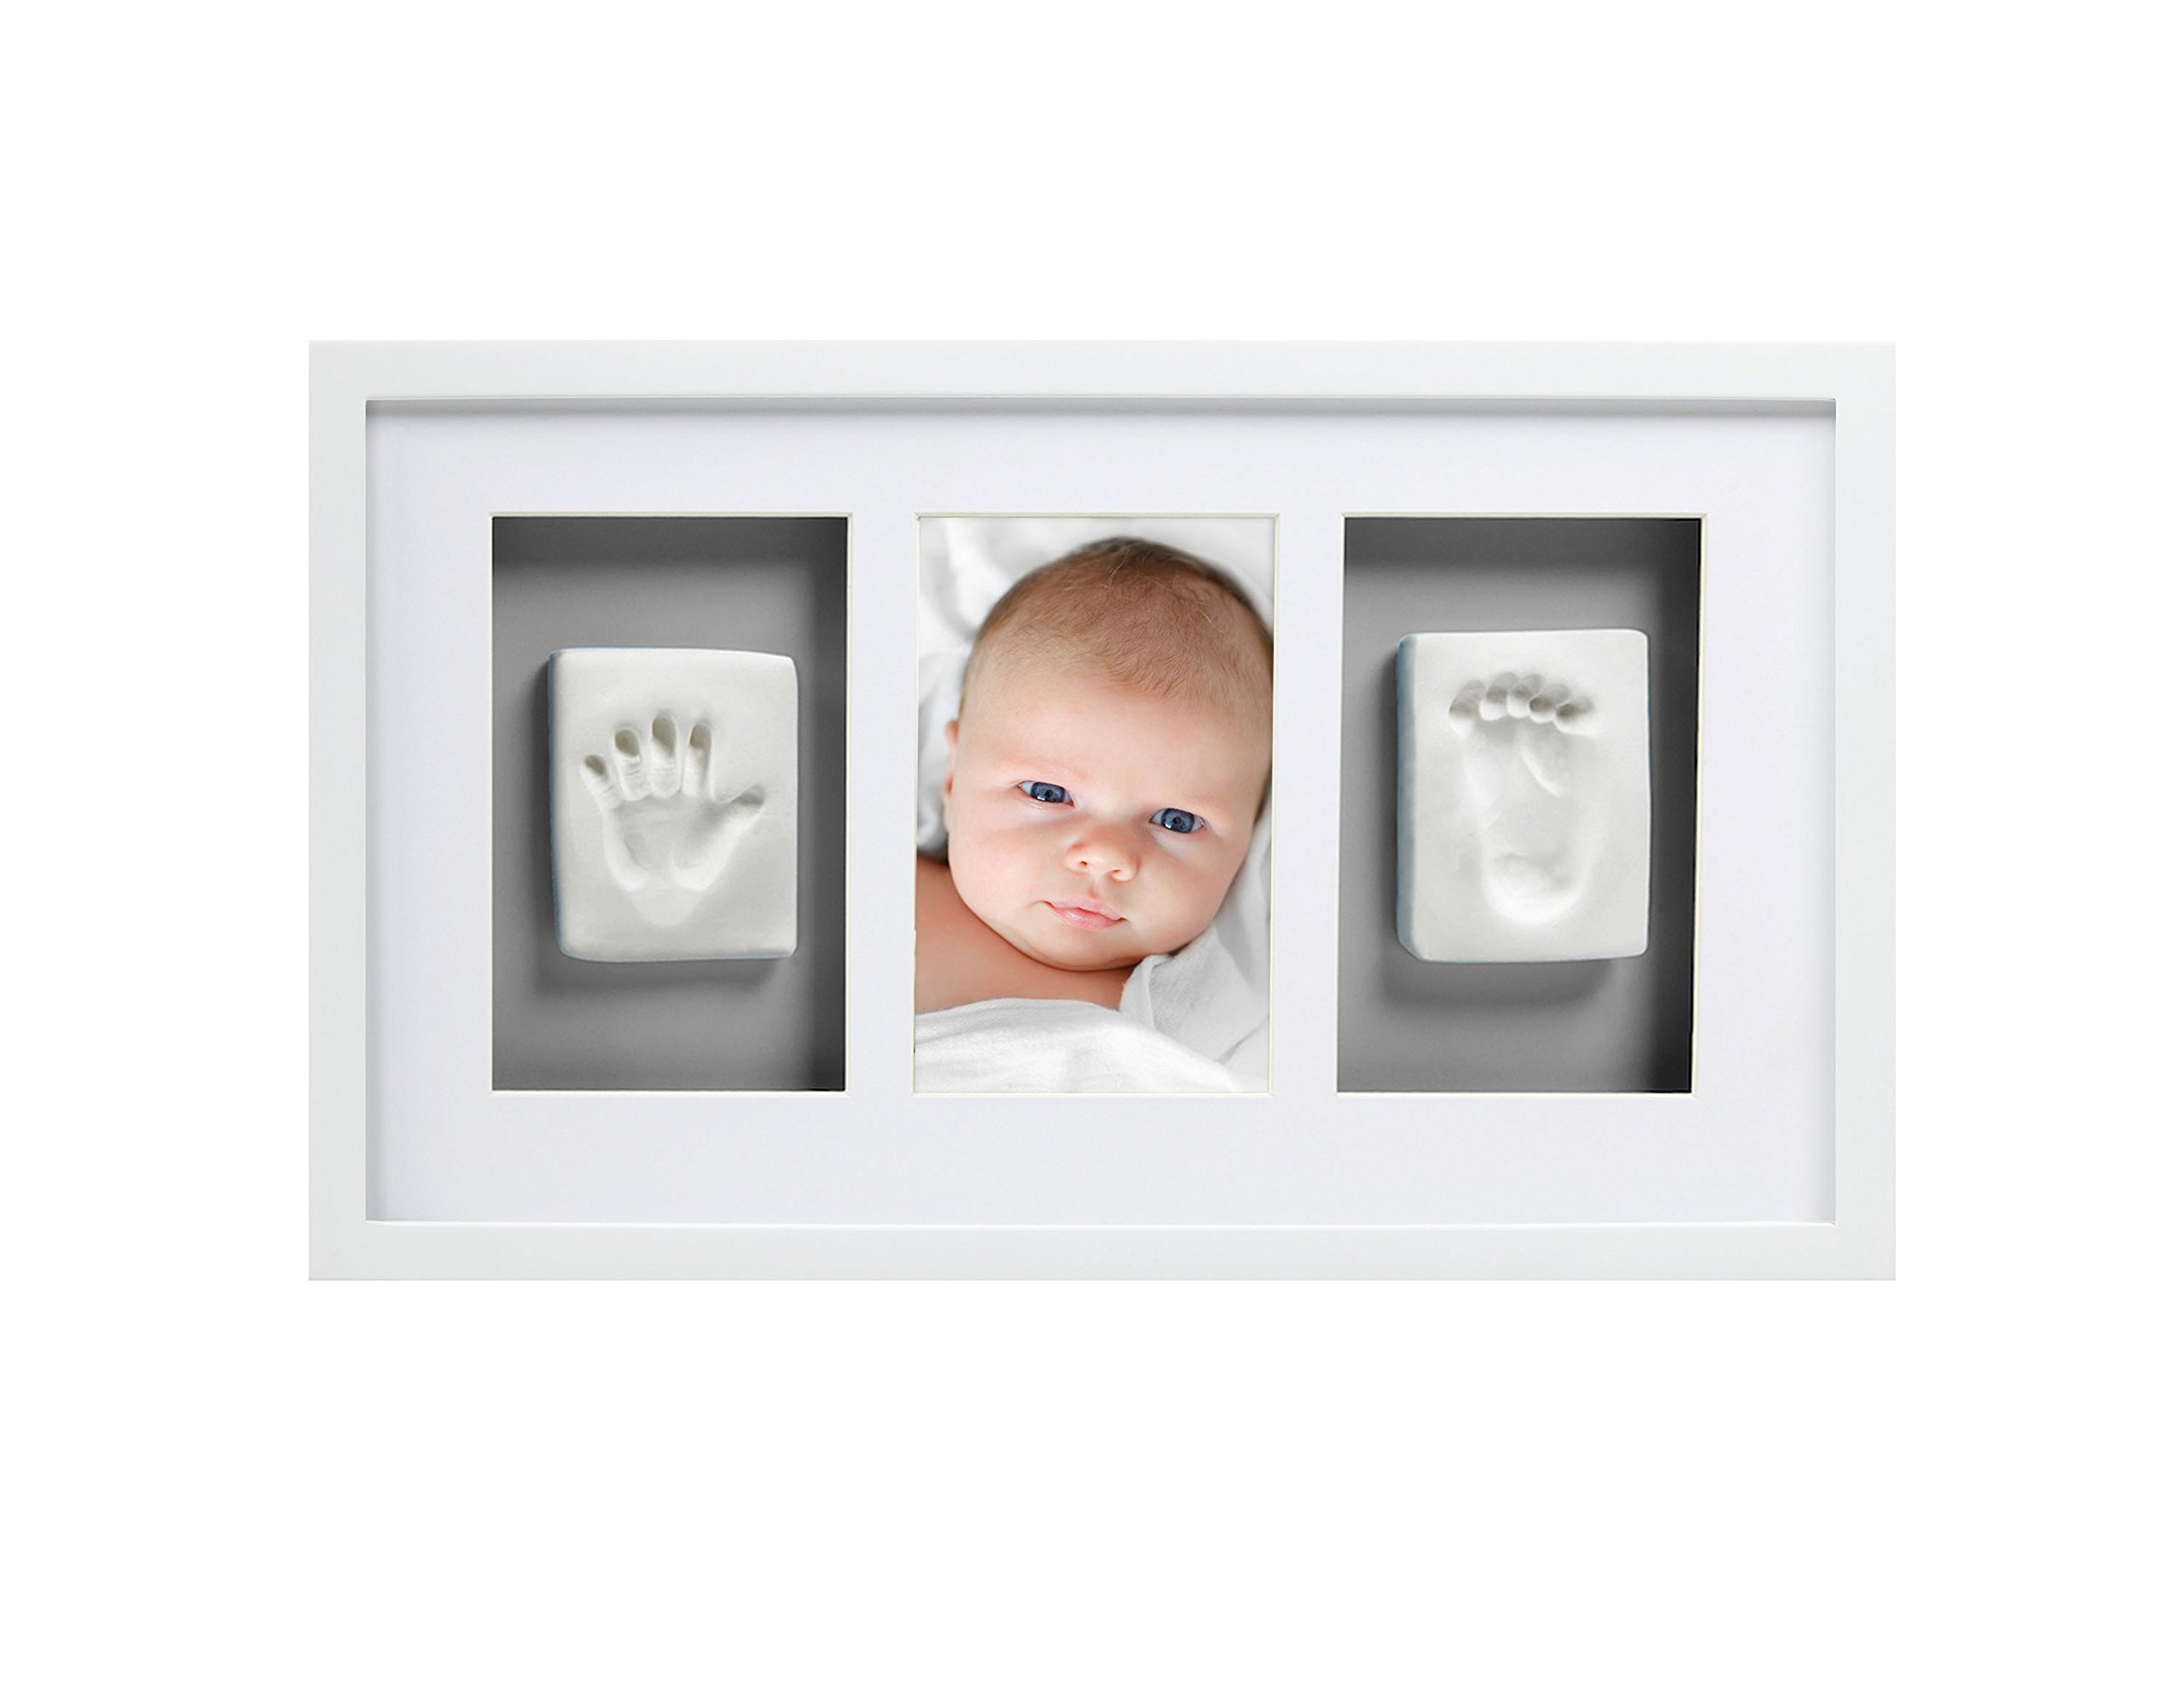 Pearhead Babyprints Newborn Baby Handprint and Footprint Deluxe Wall Photo Frame & Impression Kit - Makes A Perfect Baby Shower Gift, White